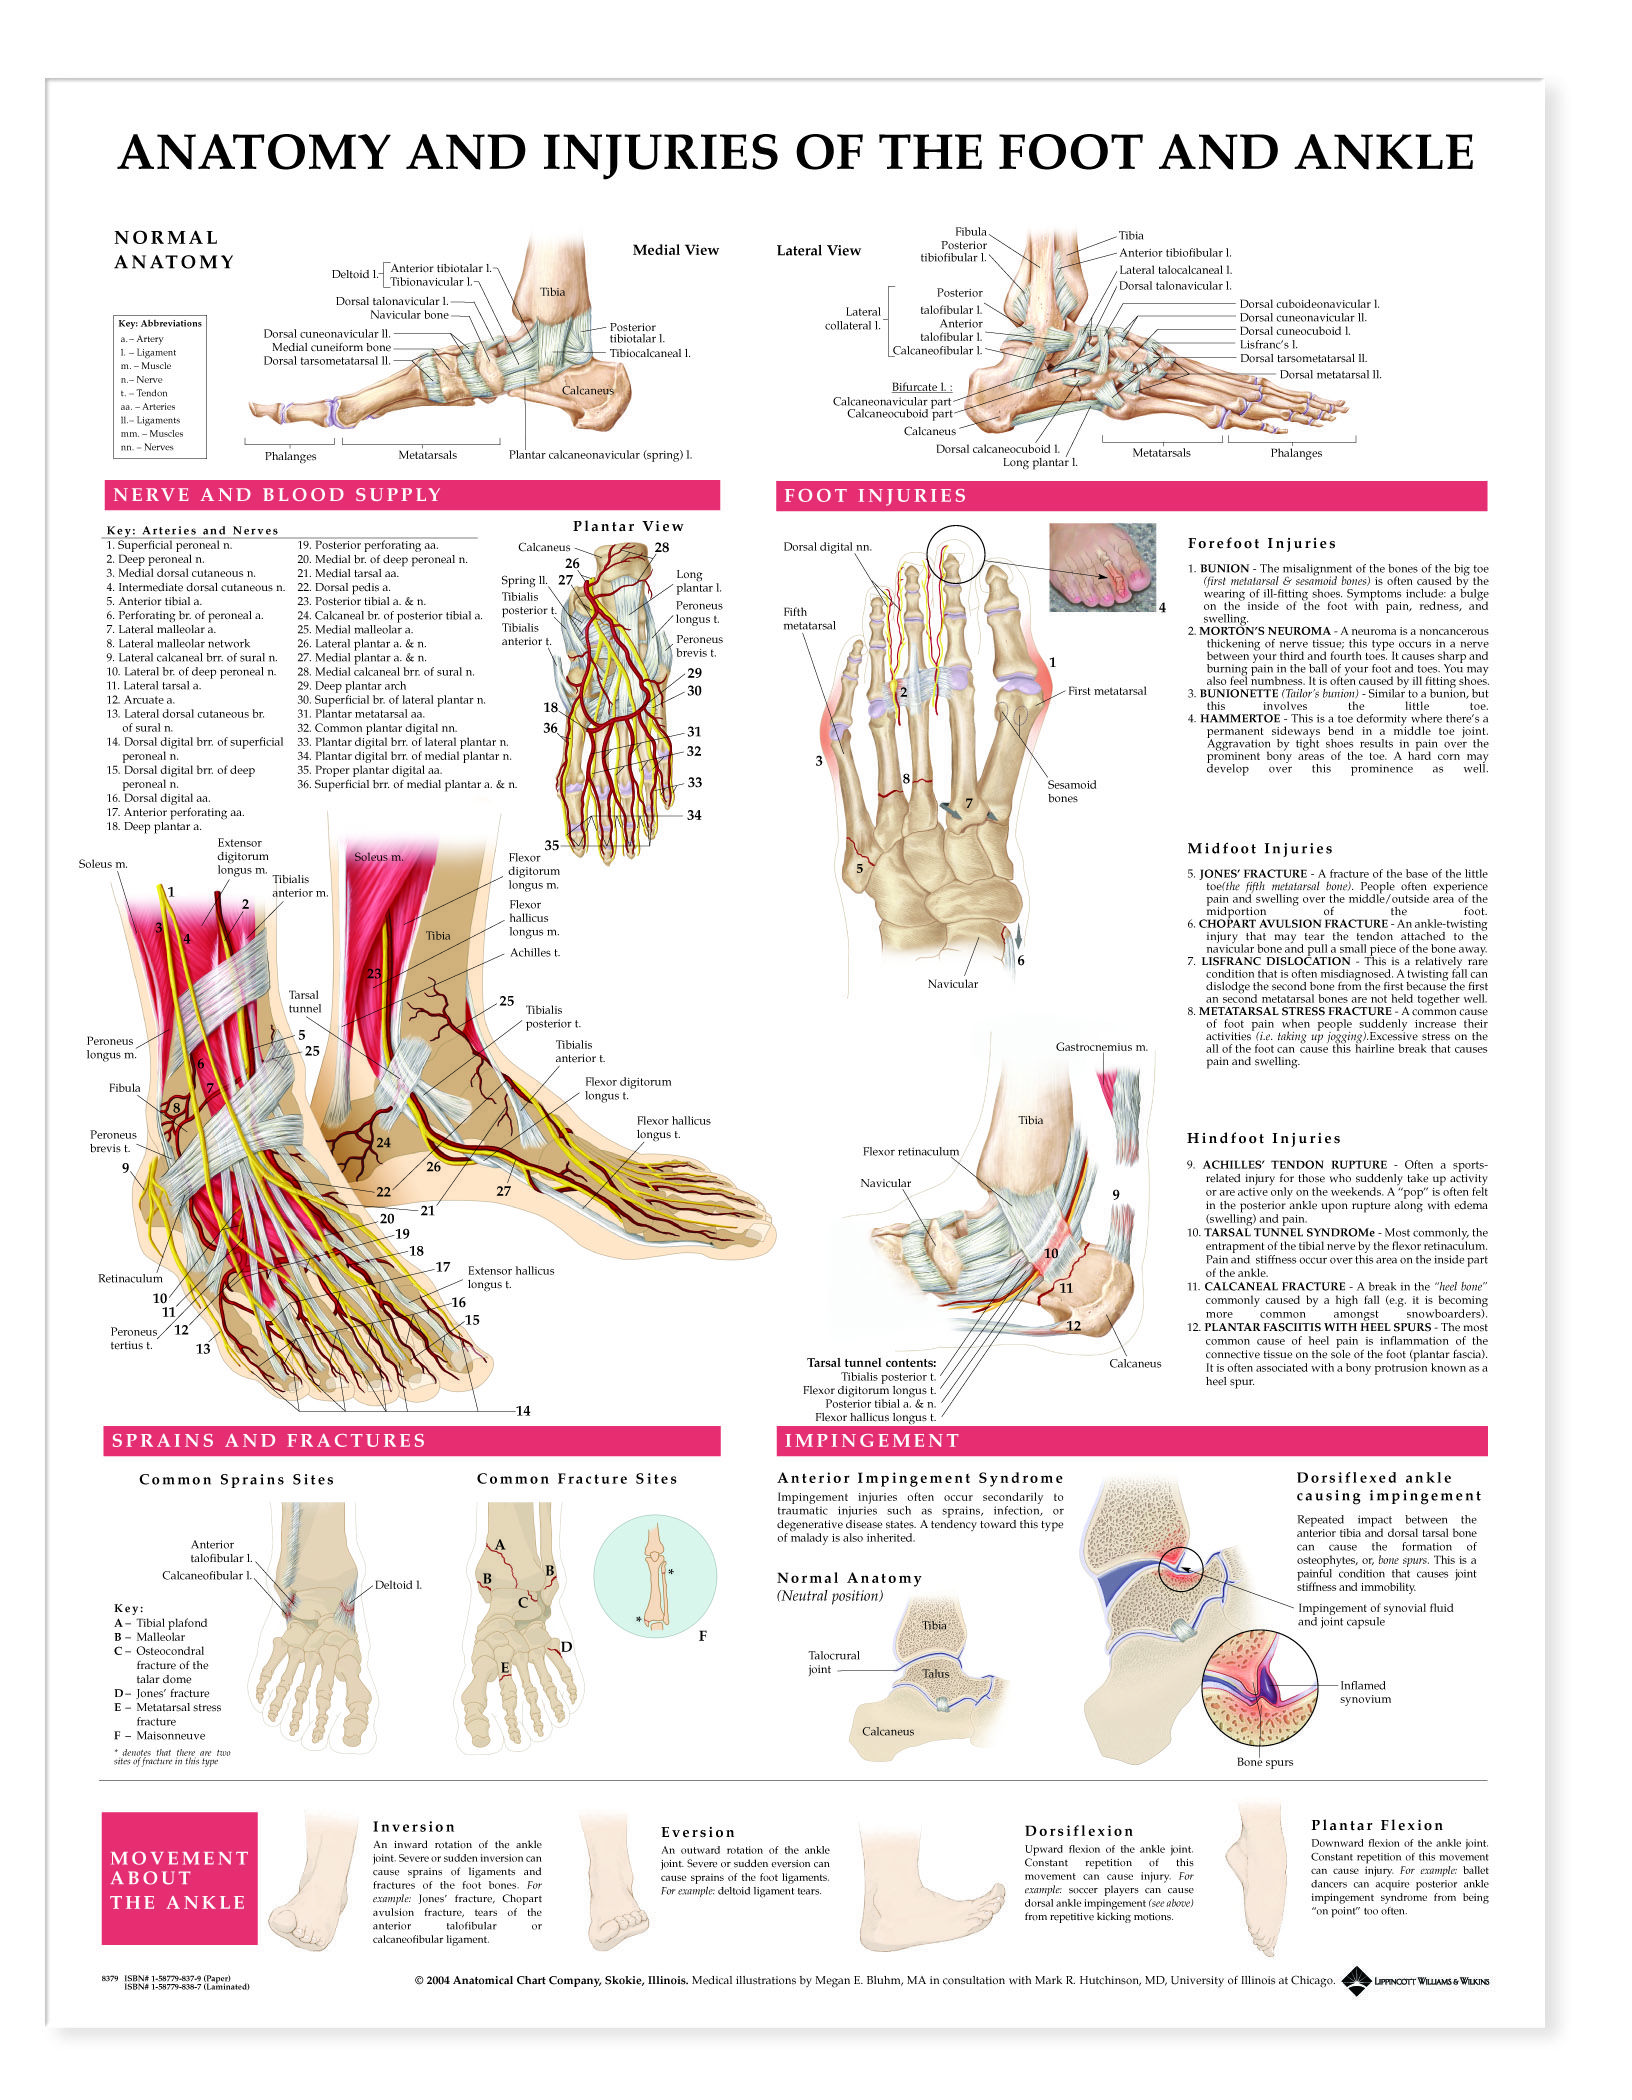 Anatomy and Injuries of the Foot & Ankle | anatomia | Pinterest ...